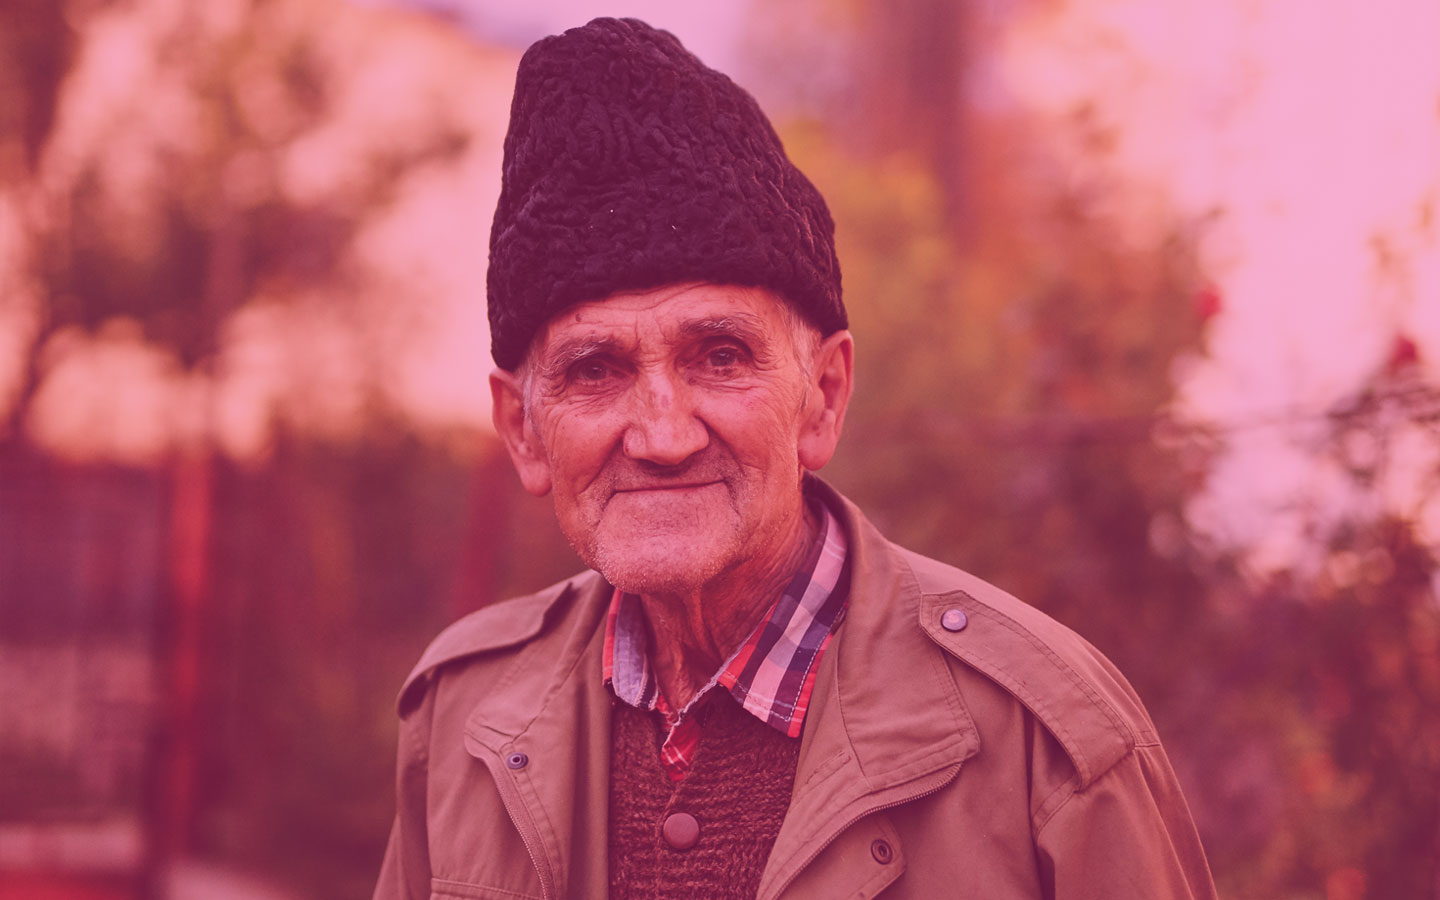 Elderly man wearing a winter hat